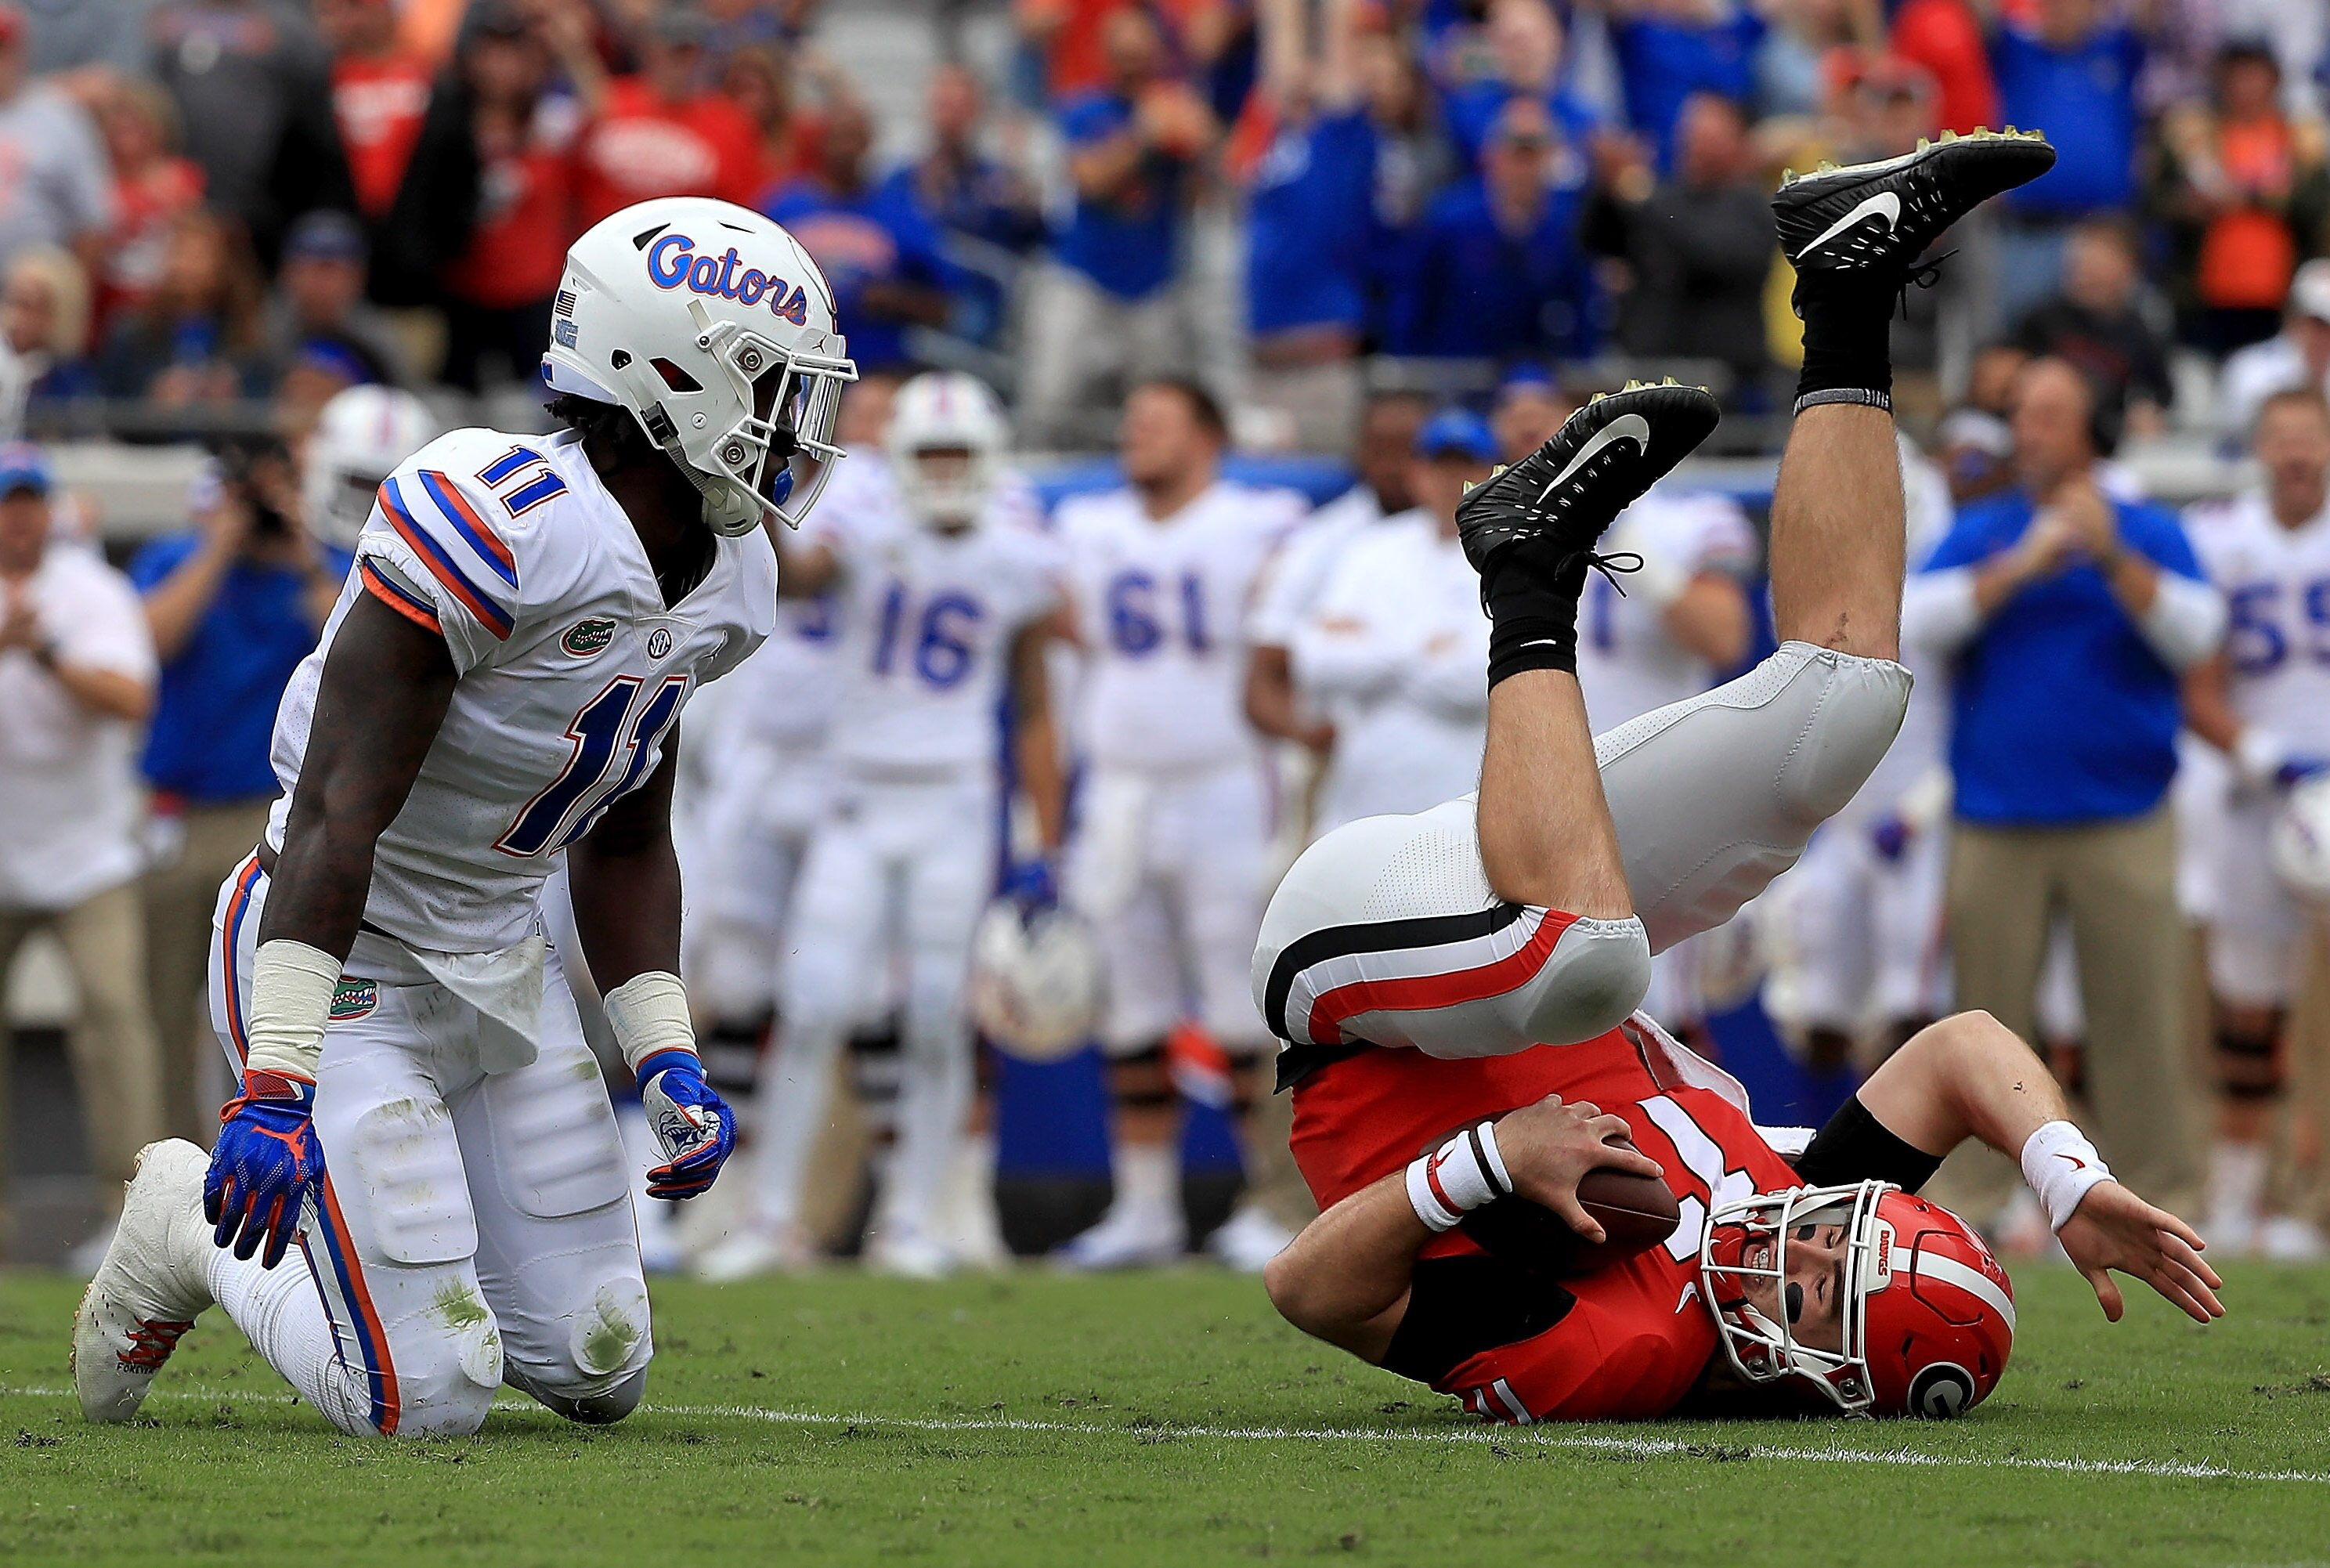 Wanna See The Worst College Football Take Of All Time?